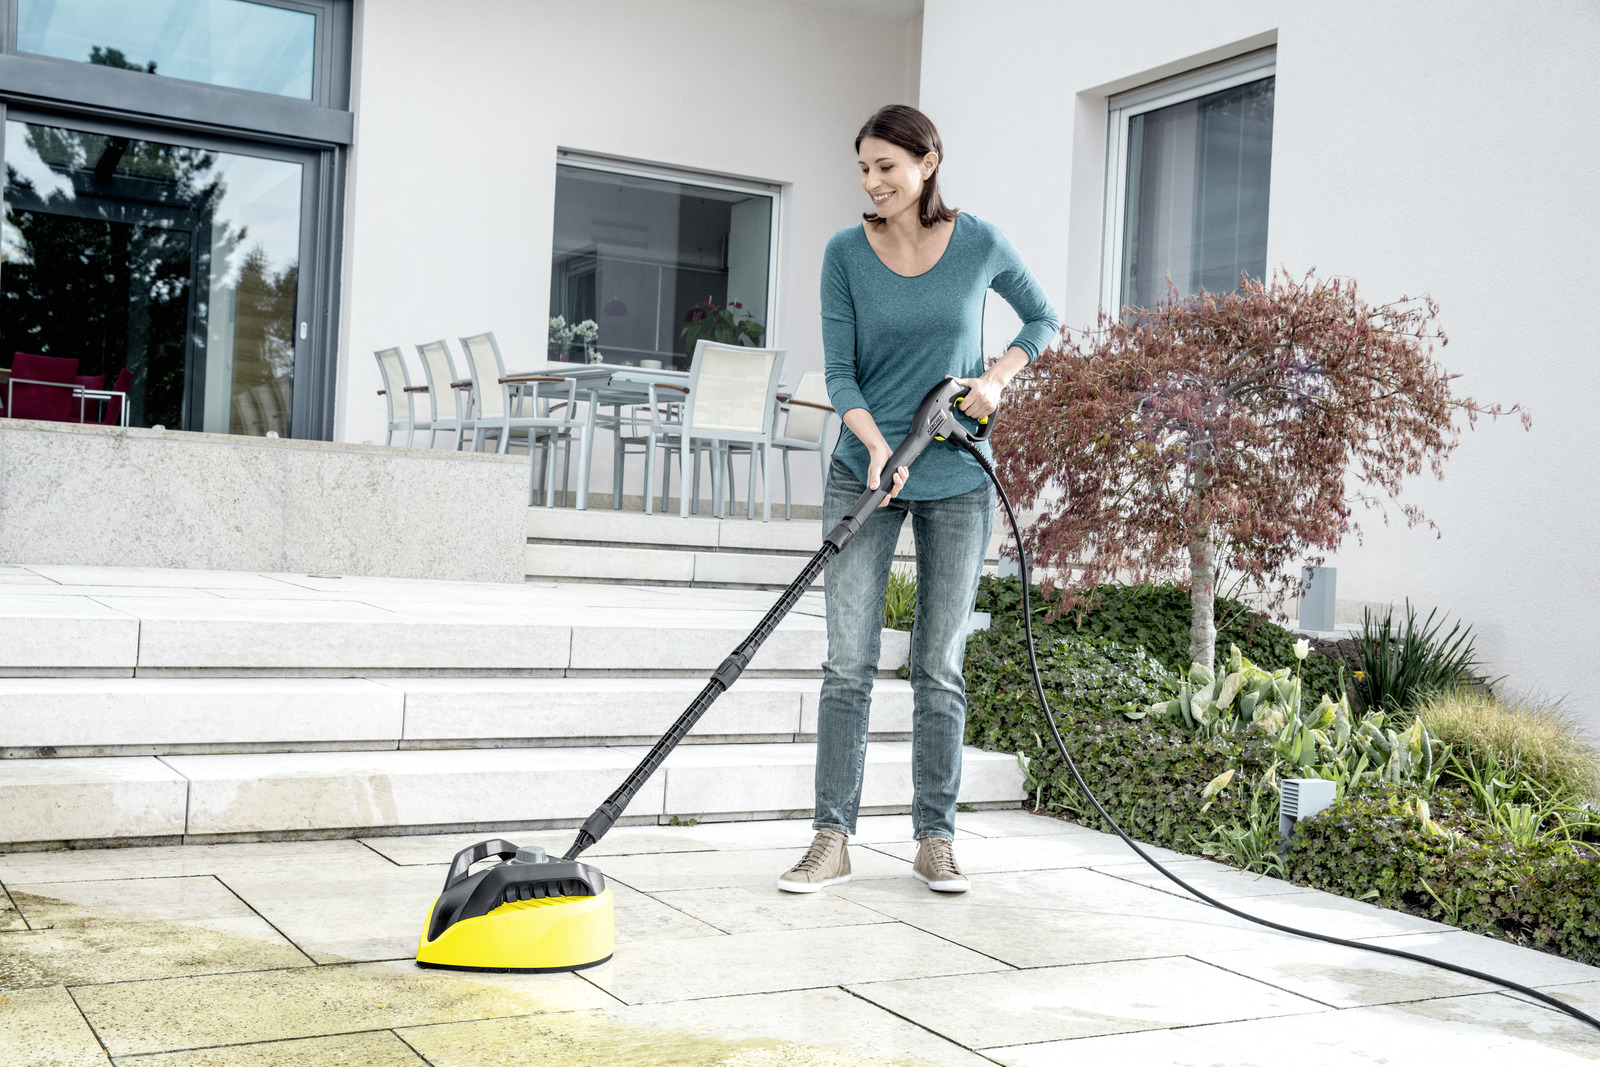 how to connect karcher patio cleaner